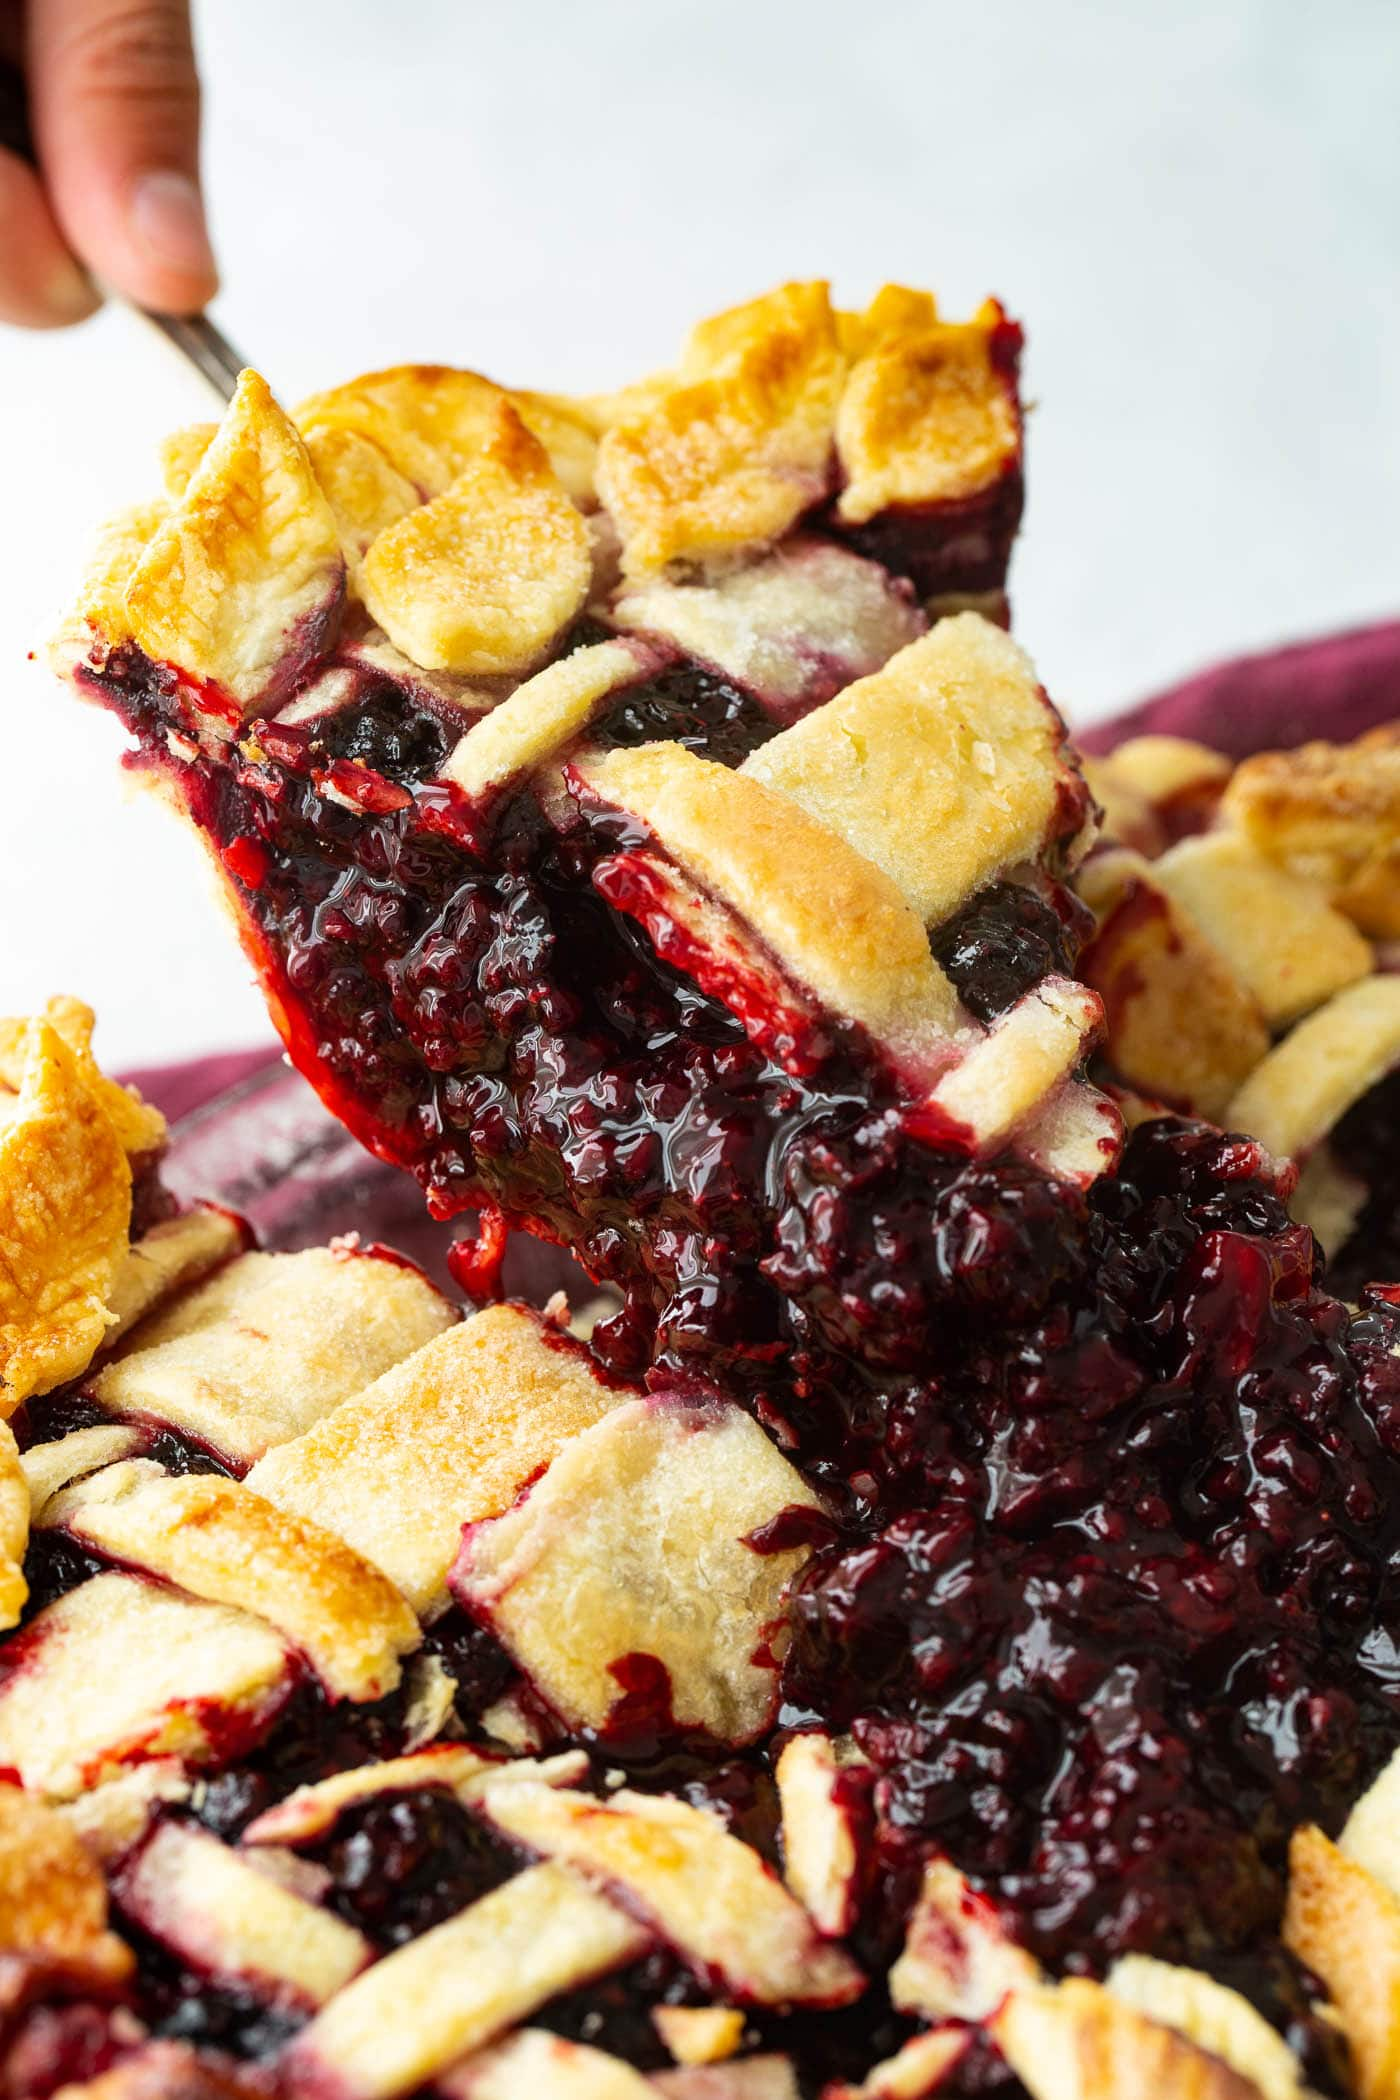 a slice of marionberry pie being lifted out of the pie dish